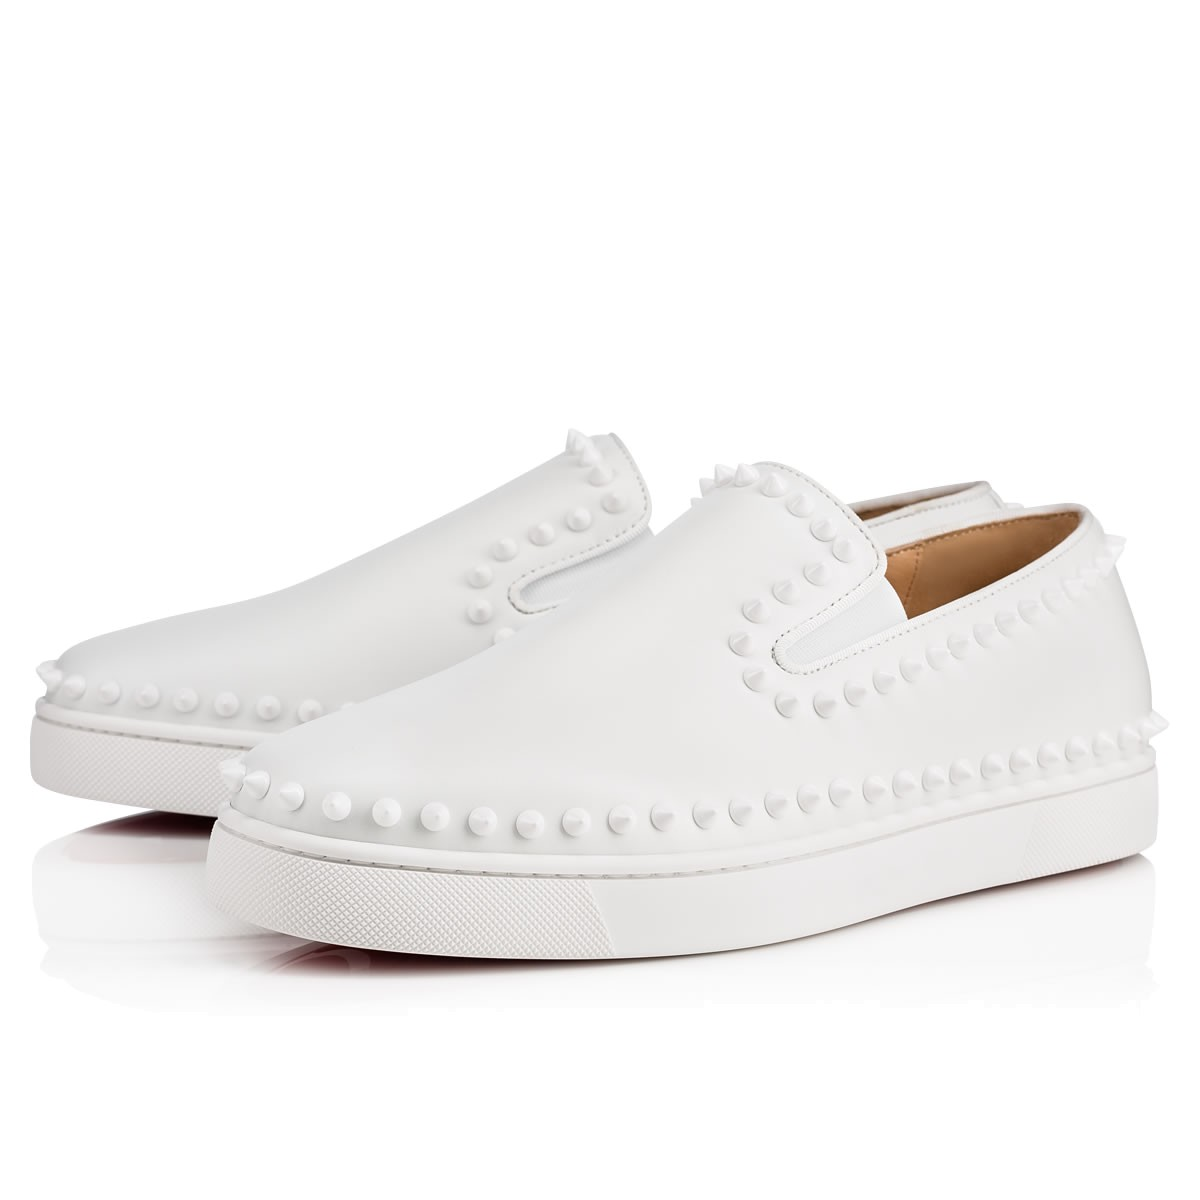 chaussure louboutin homme blanche 1 8a7829ae00ce